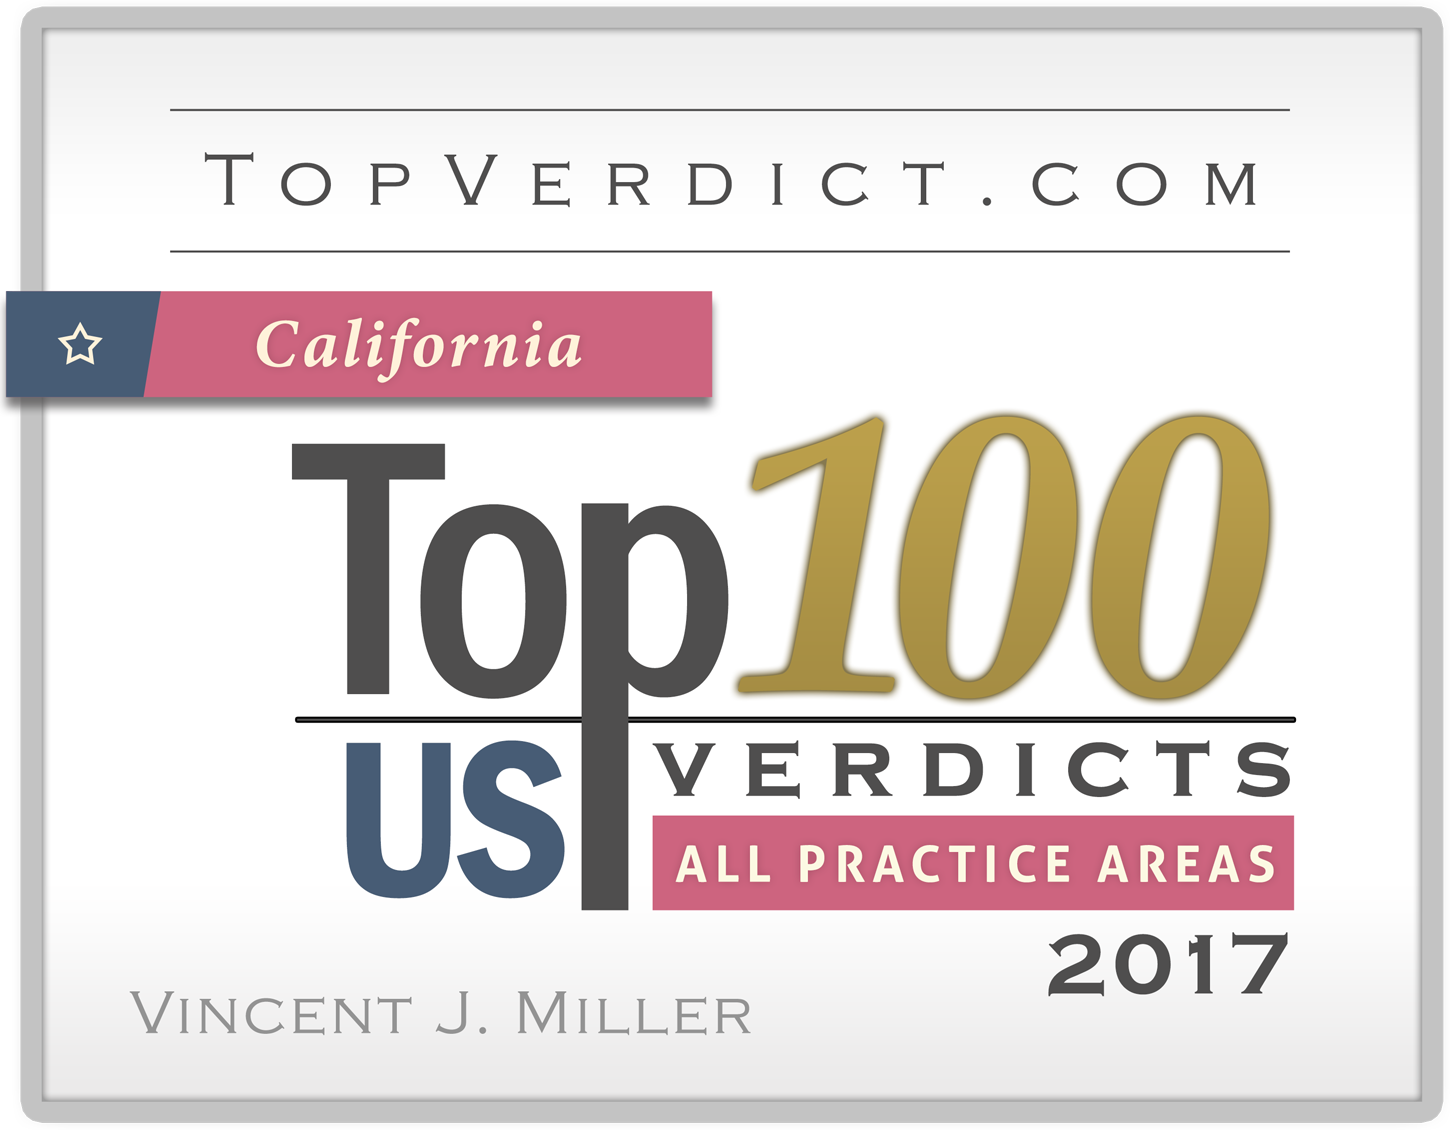 2017-top100-ca-verdicts-vincent-miller